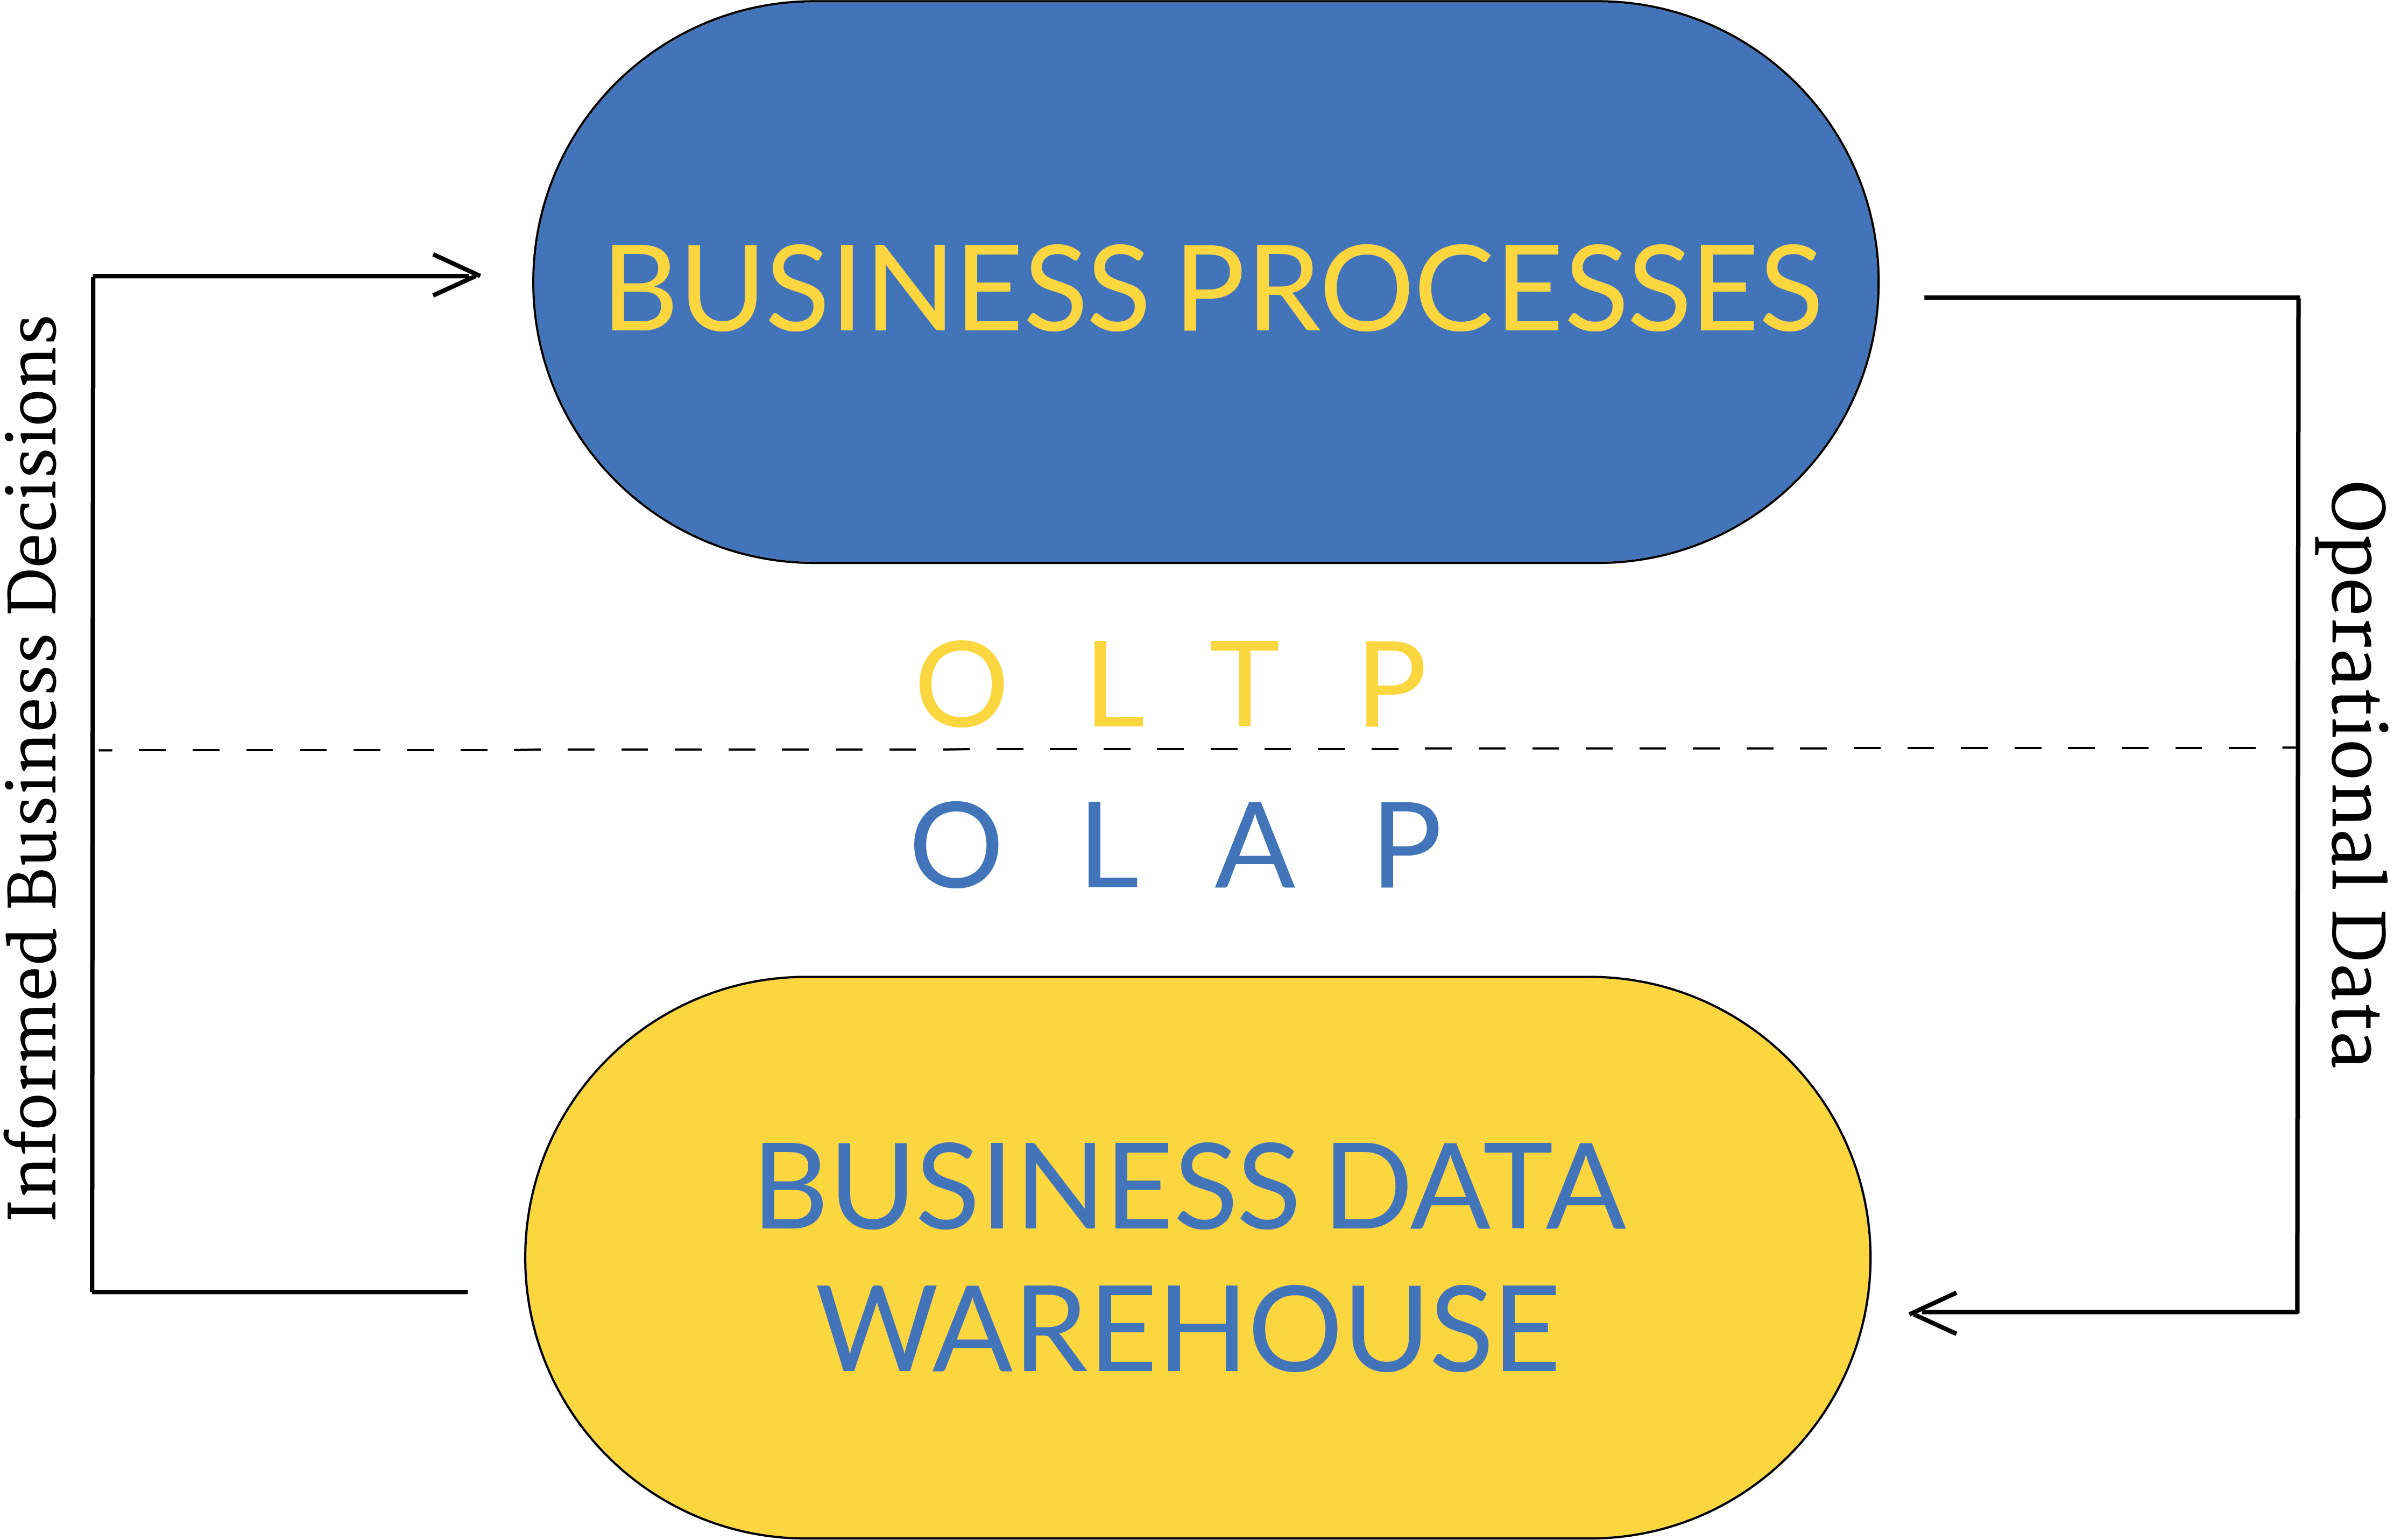 OLTP vs OLAP: what's the difference between them?